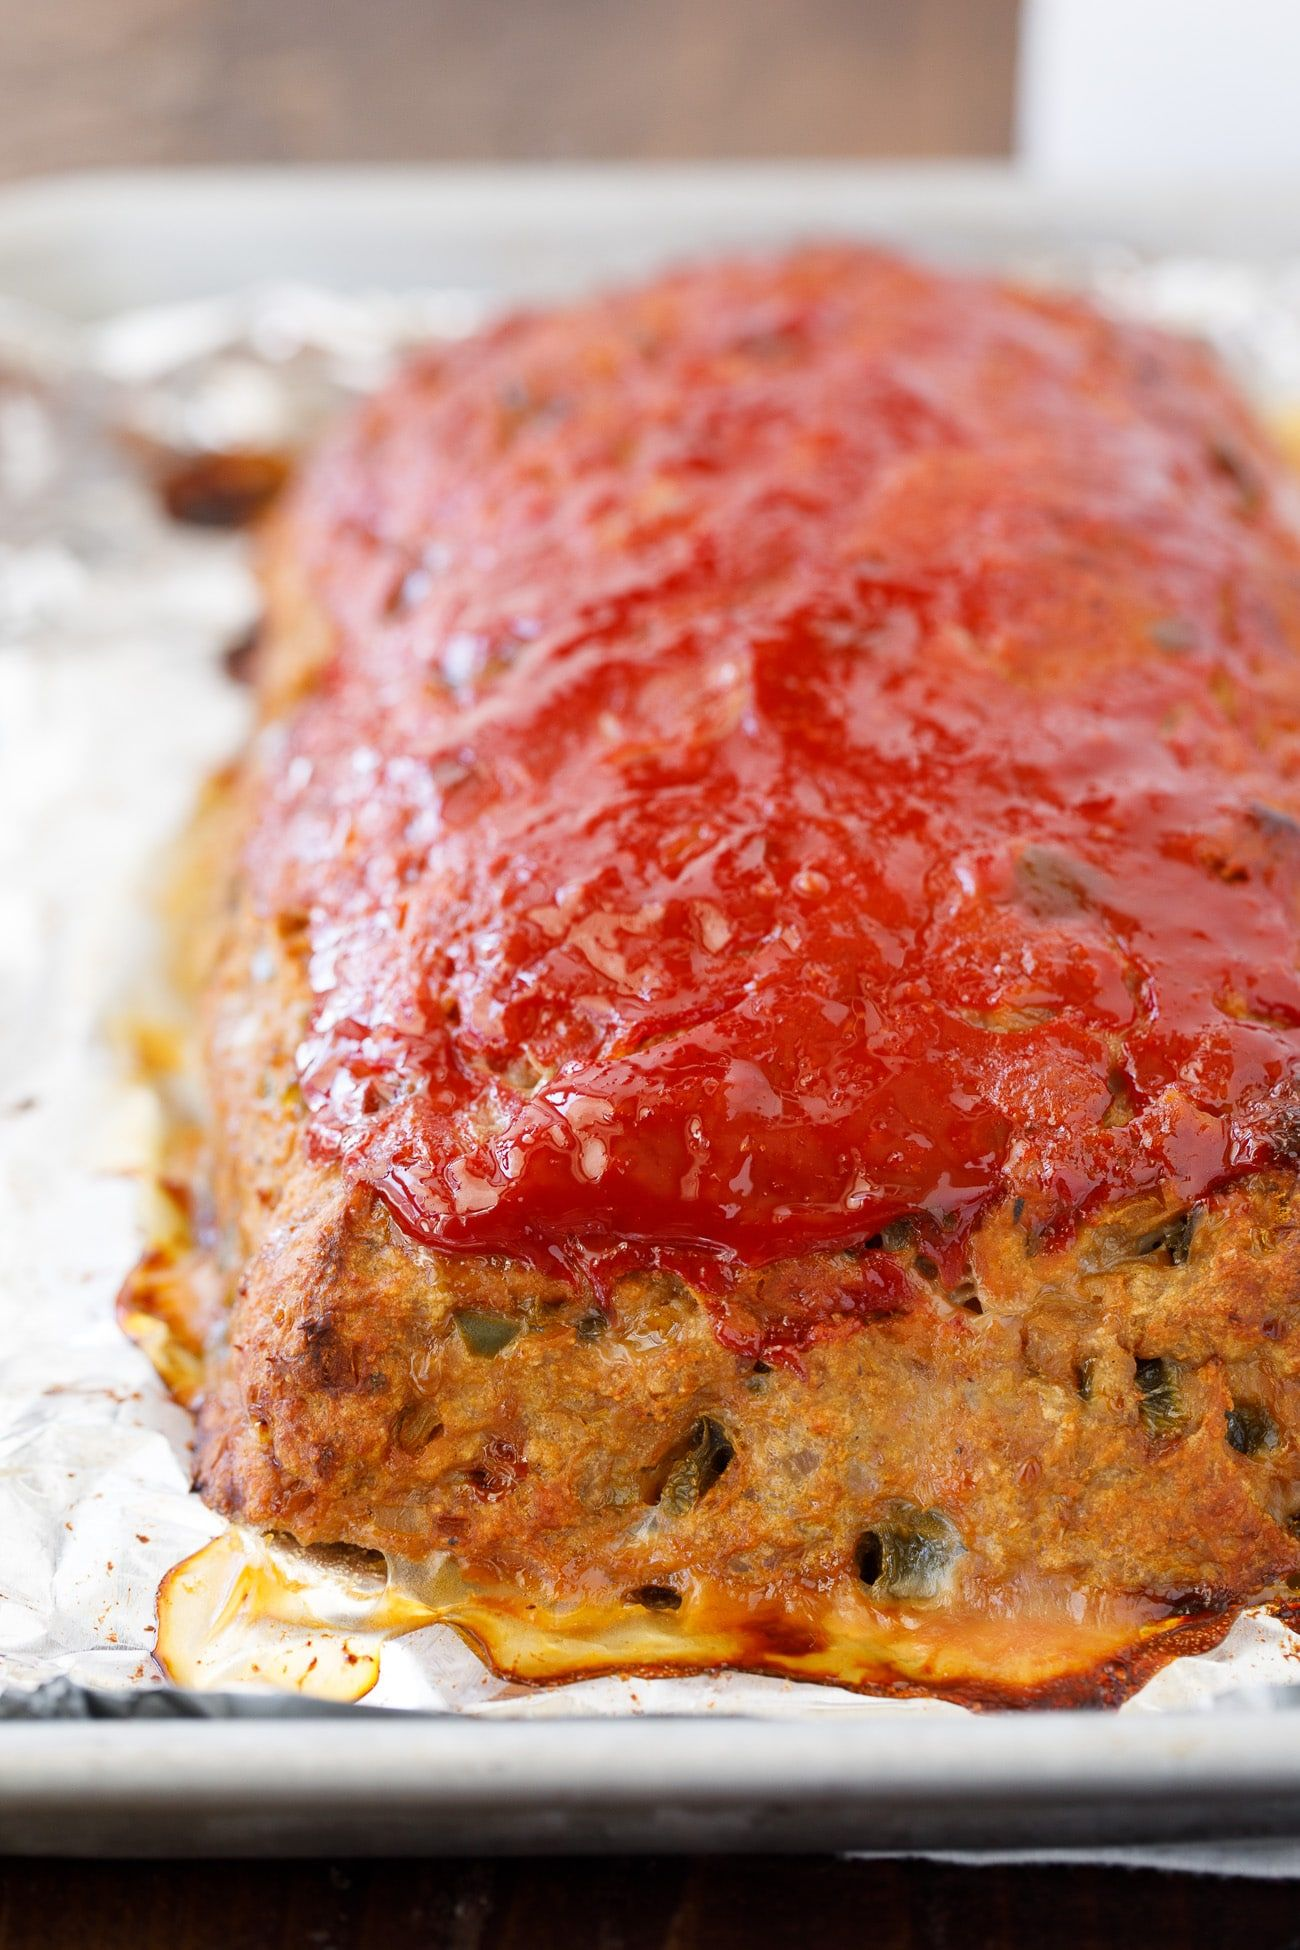 Ground Turkey Meatloaf Recipe The Best Easy Healthy Turkey Meatloaf Recipe Turkey Meatloaf Recipes Ground Turkey Meatloaf Ground Turkey Meatloaf Recipes